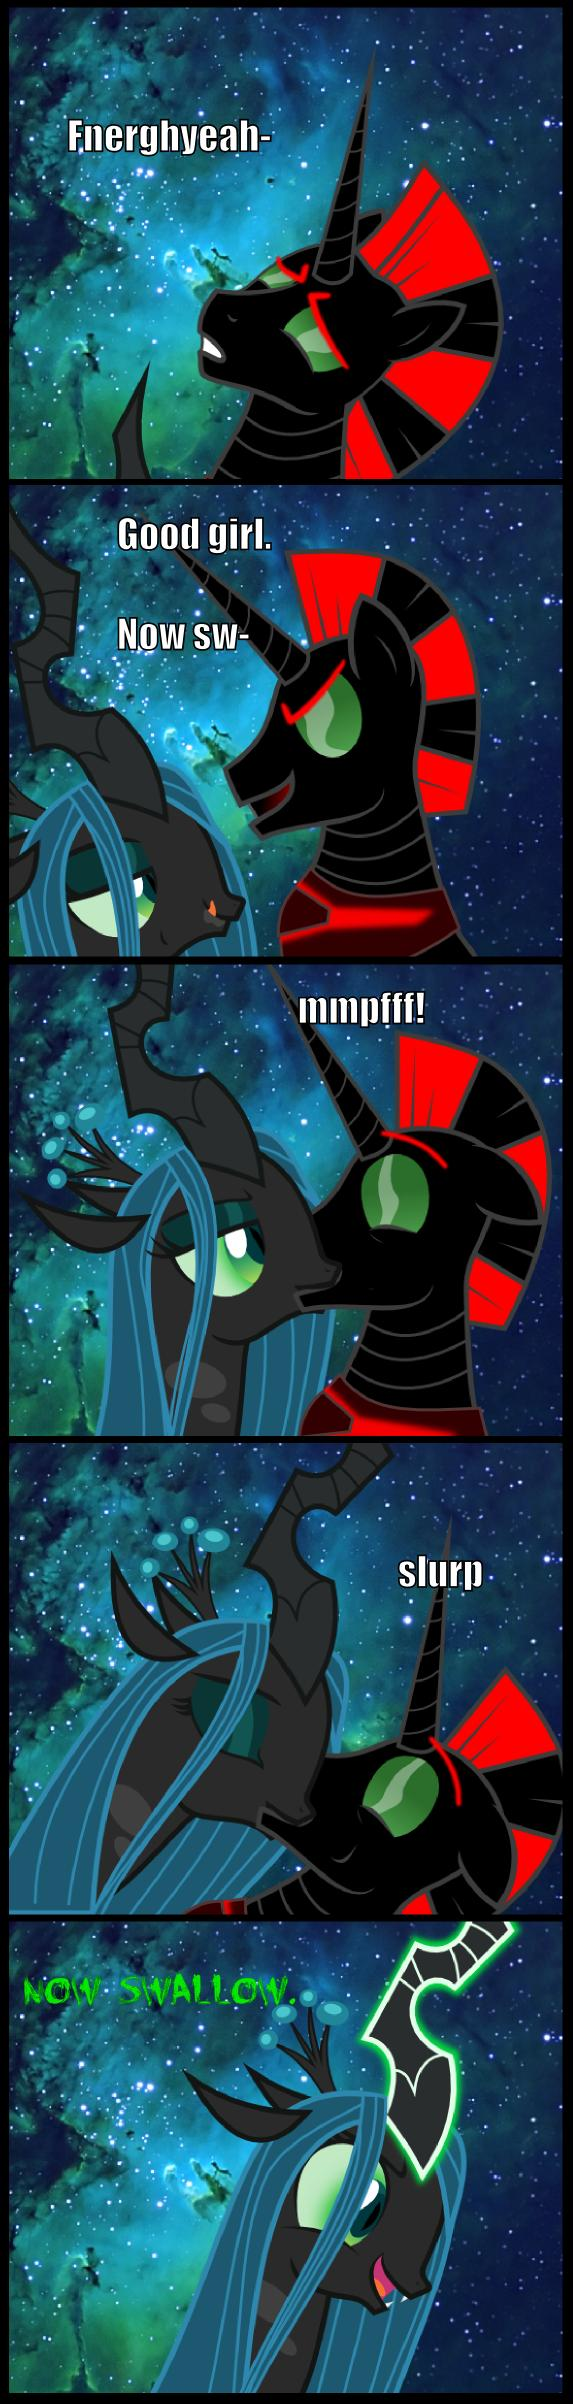 Queen Chrysalis R34 | www.imgkid.com - The Image Kid Has It!